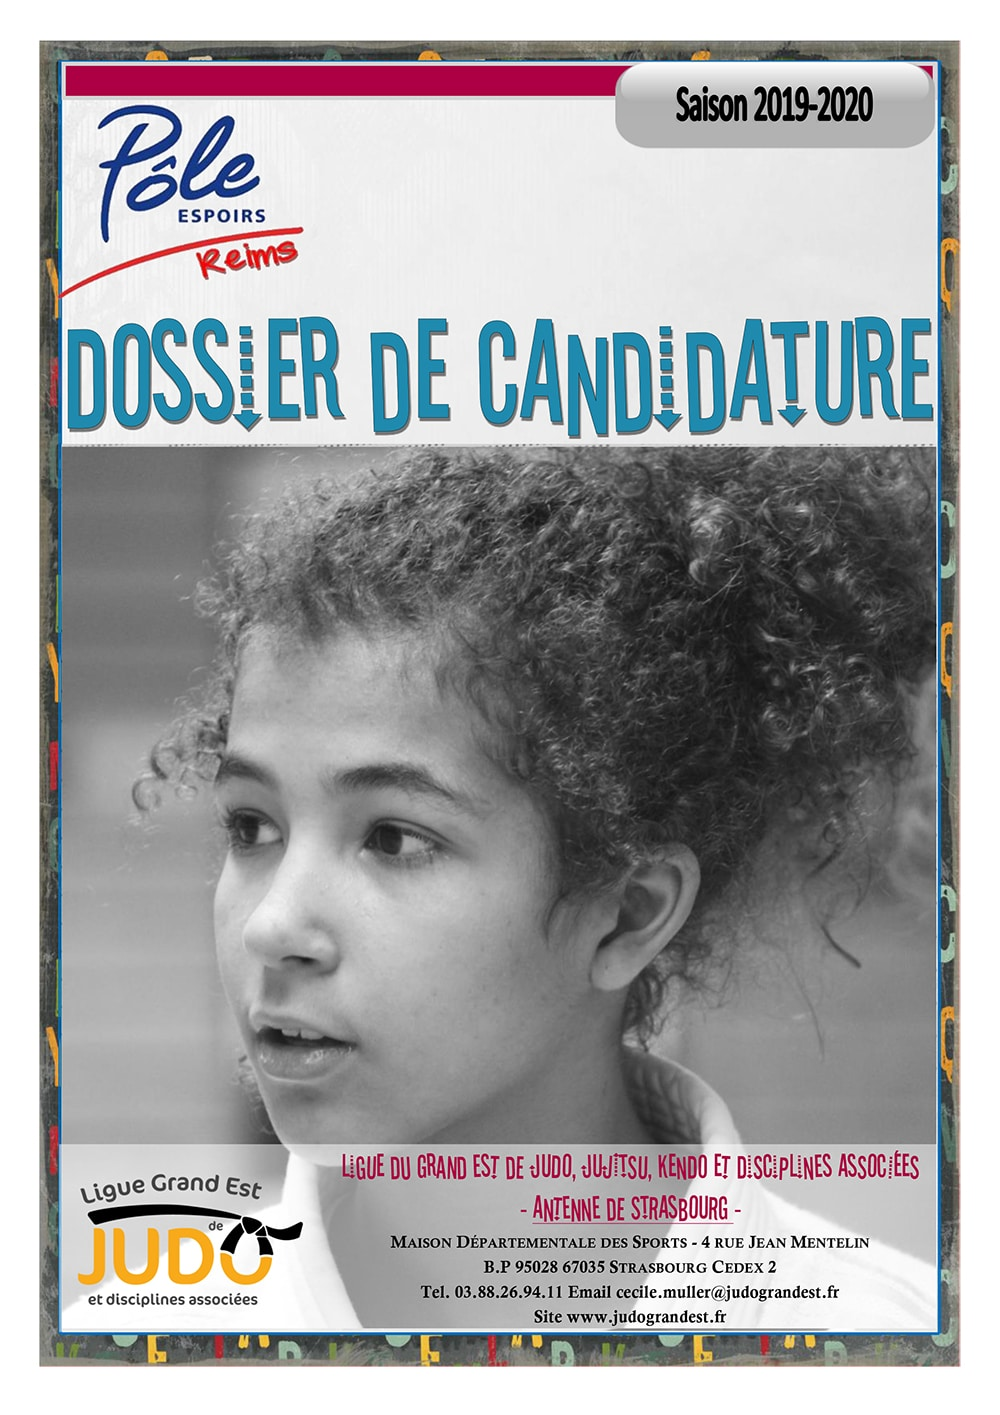 pe_reims_candidature